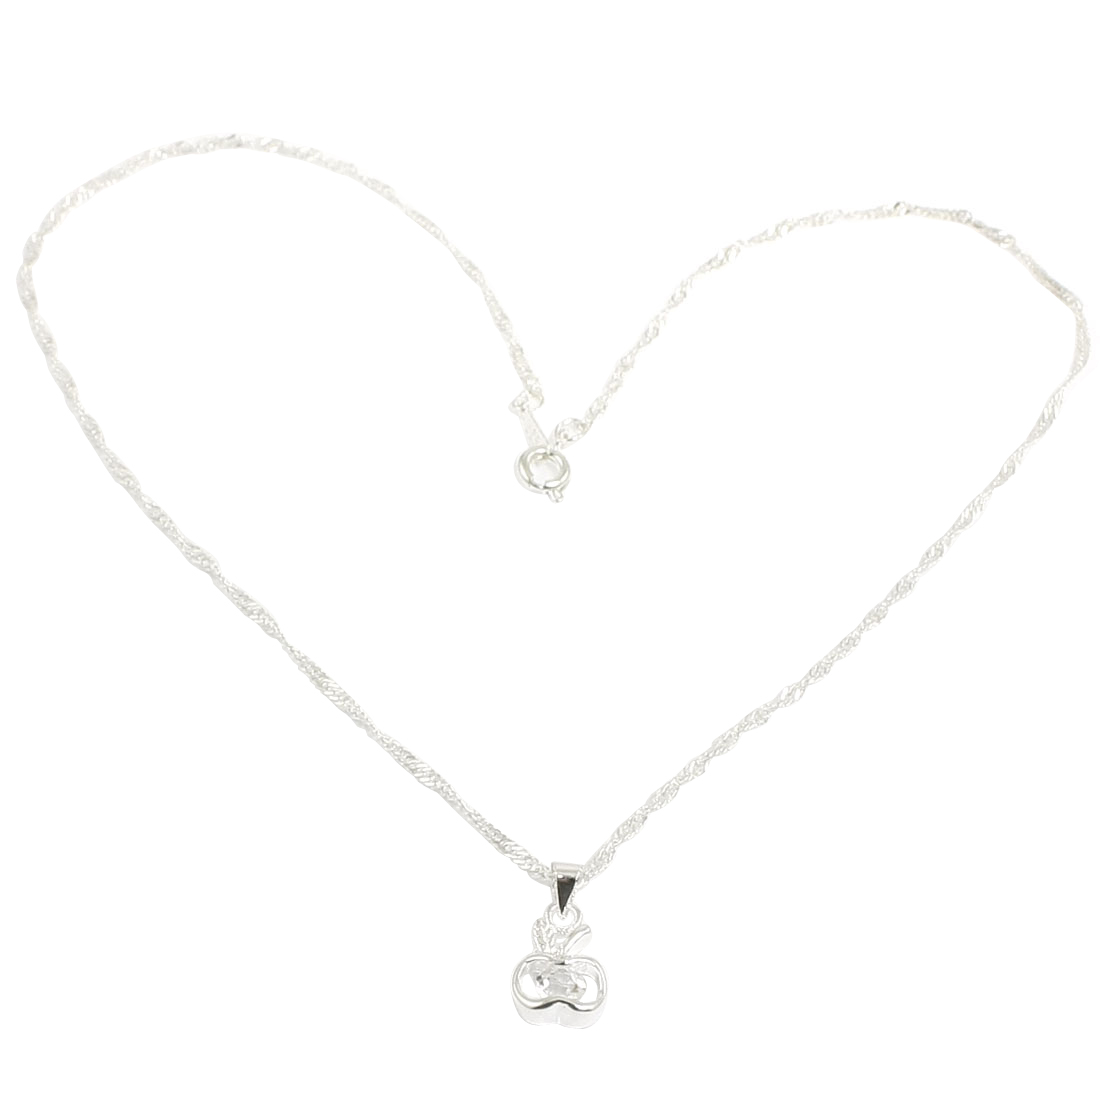 Woman Glittery Rhinestone Decor Silver Tone Spring Closure Hollow Out Apple Pendant Necklace